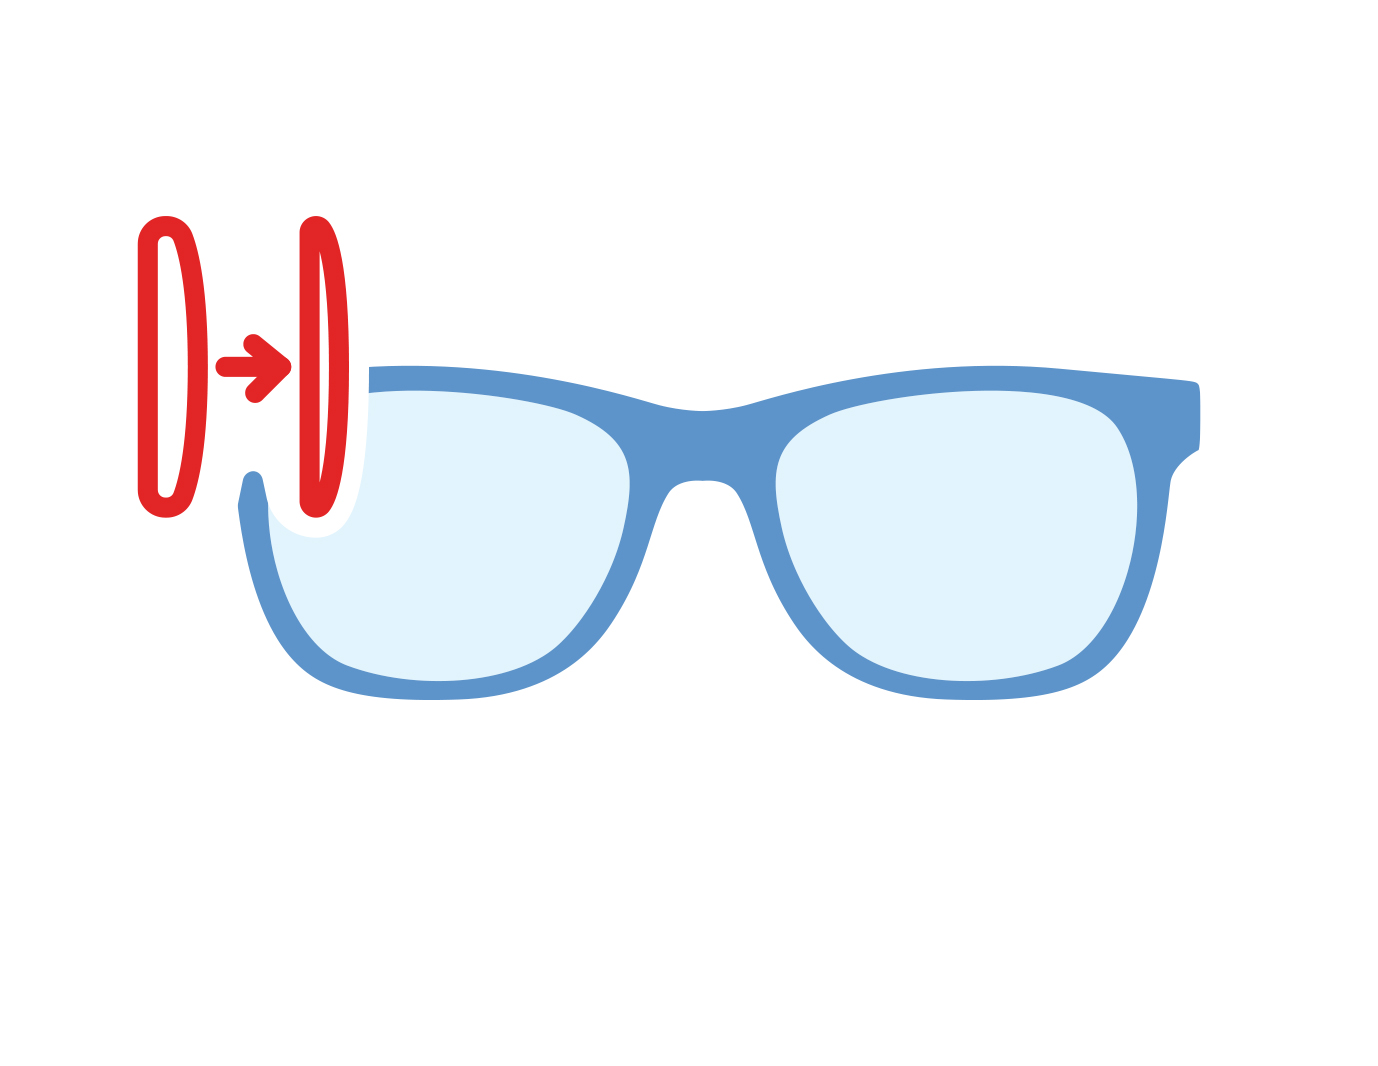 Icon of glasses with hi-index lenses